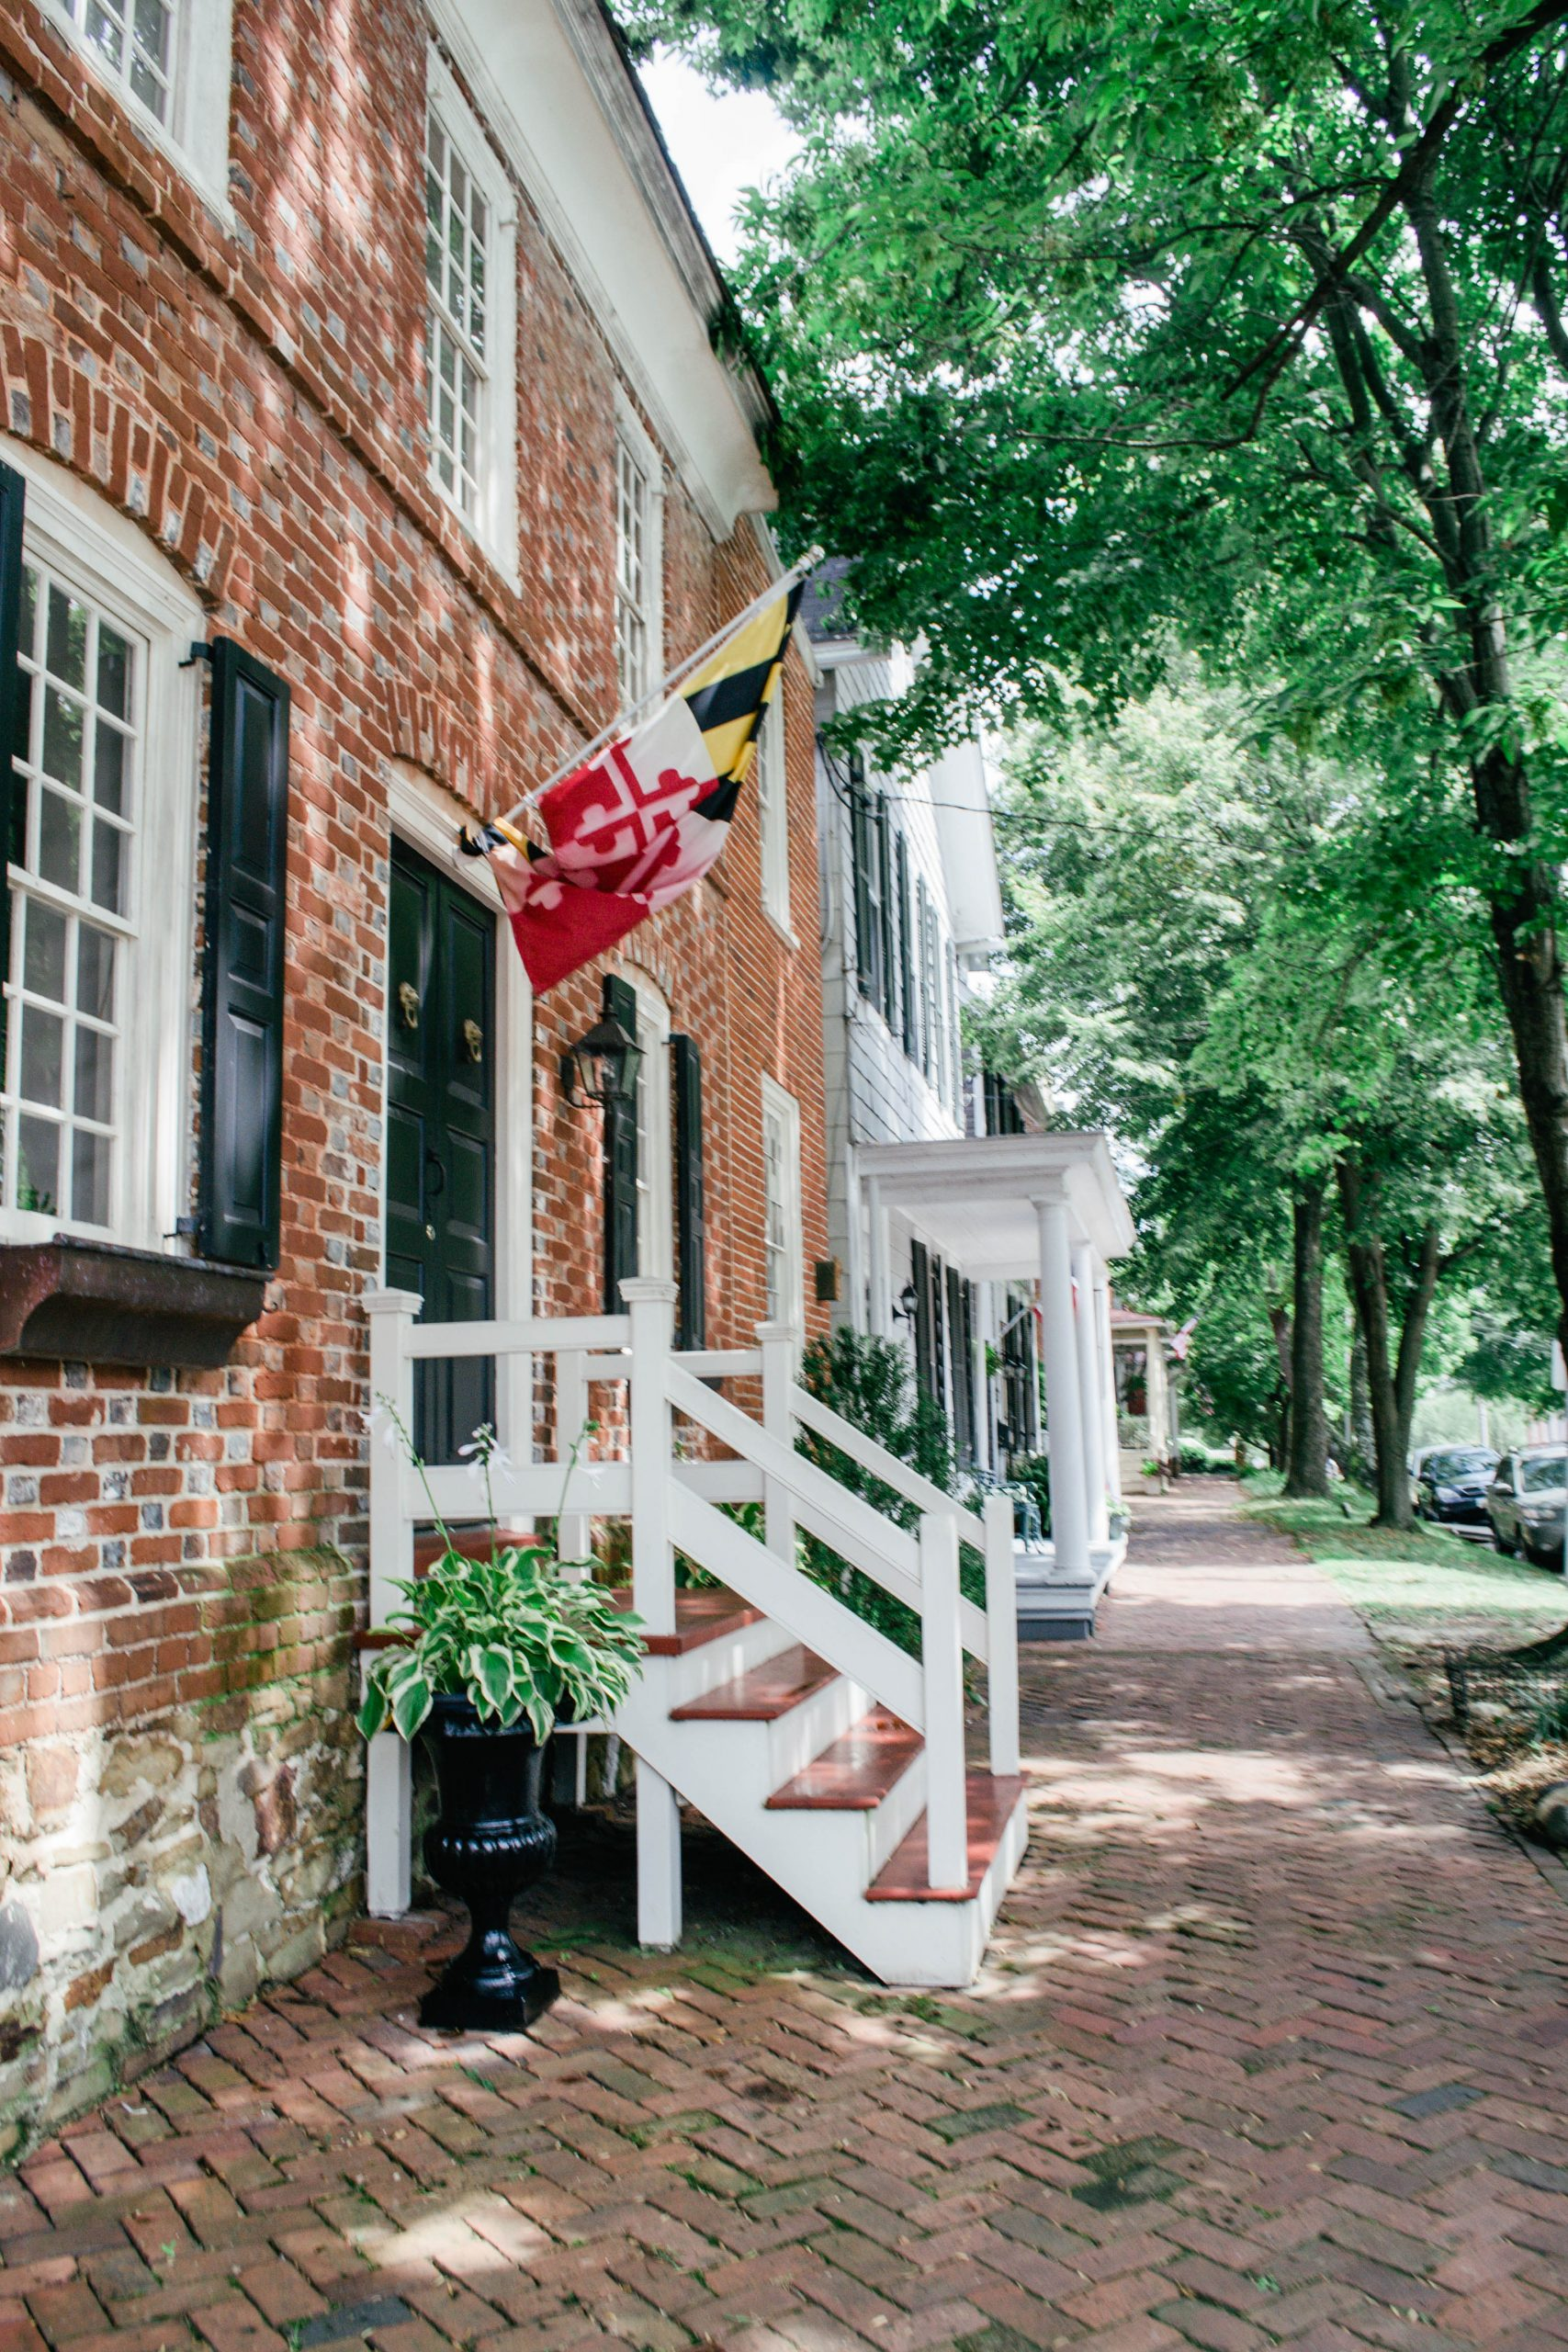 A Photo Story: Colonial Homes & Views in Chestertown, MD